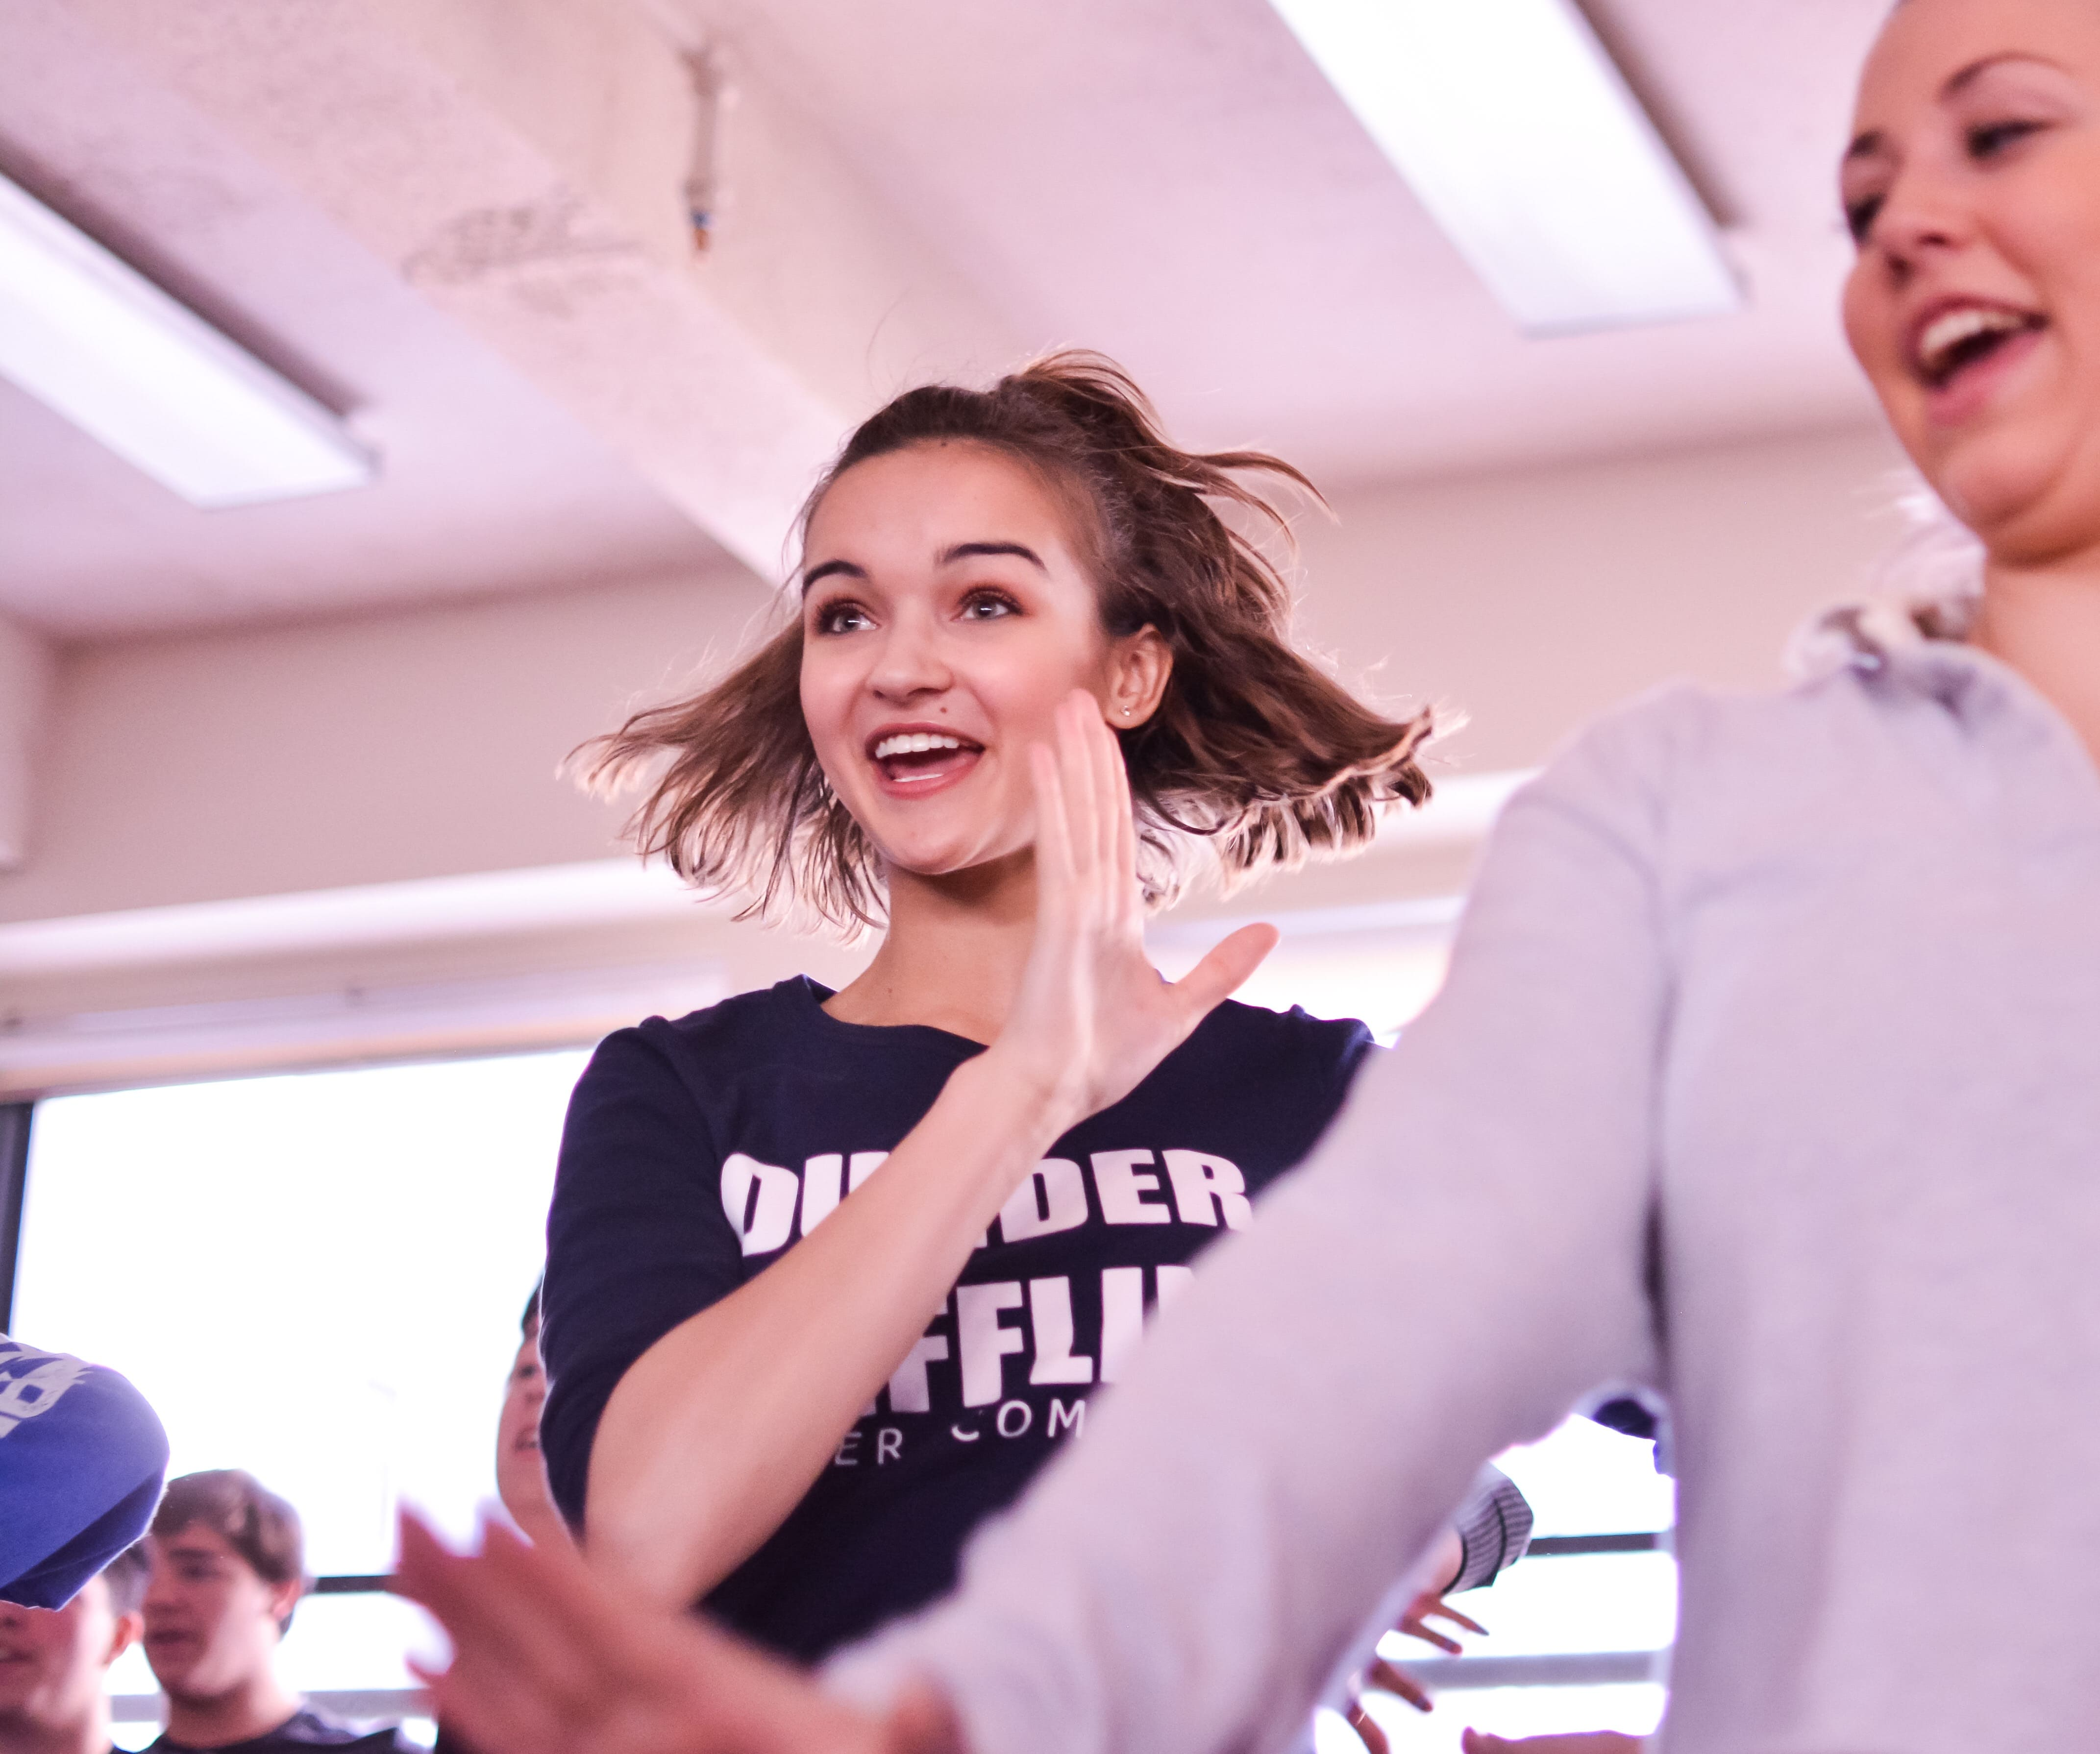 Choir student dancing at a workshop during a trip to new york city